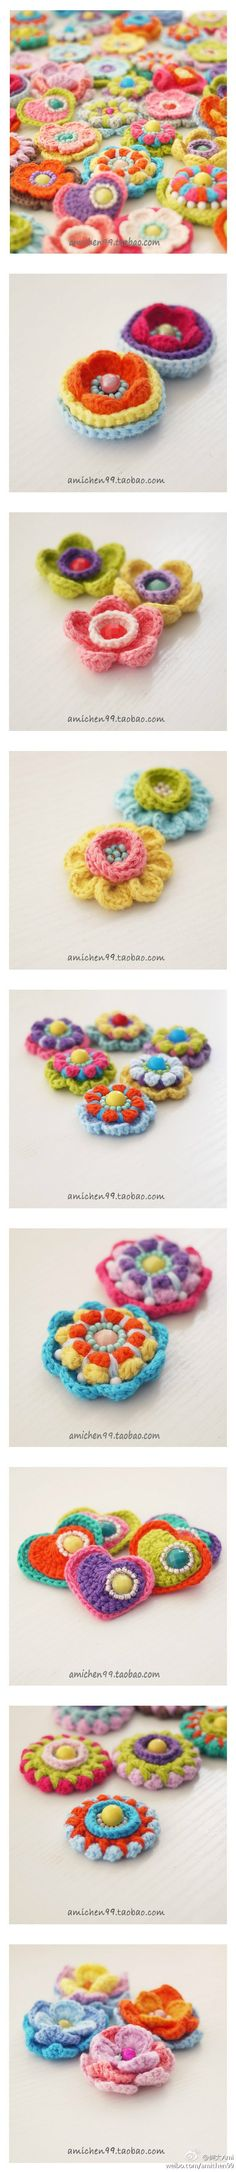 Beautiful crochet work by Ami Chen. Great combination of beads and crochet.